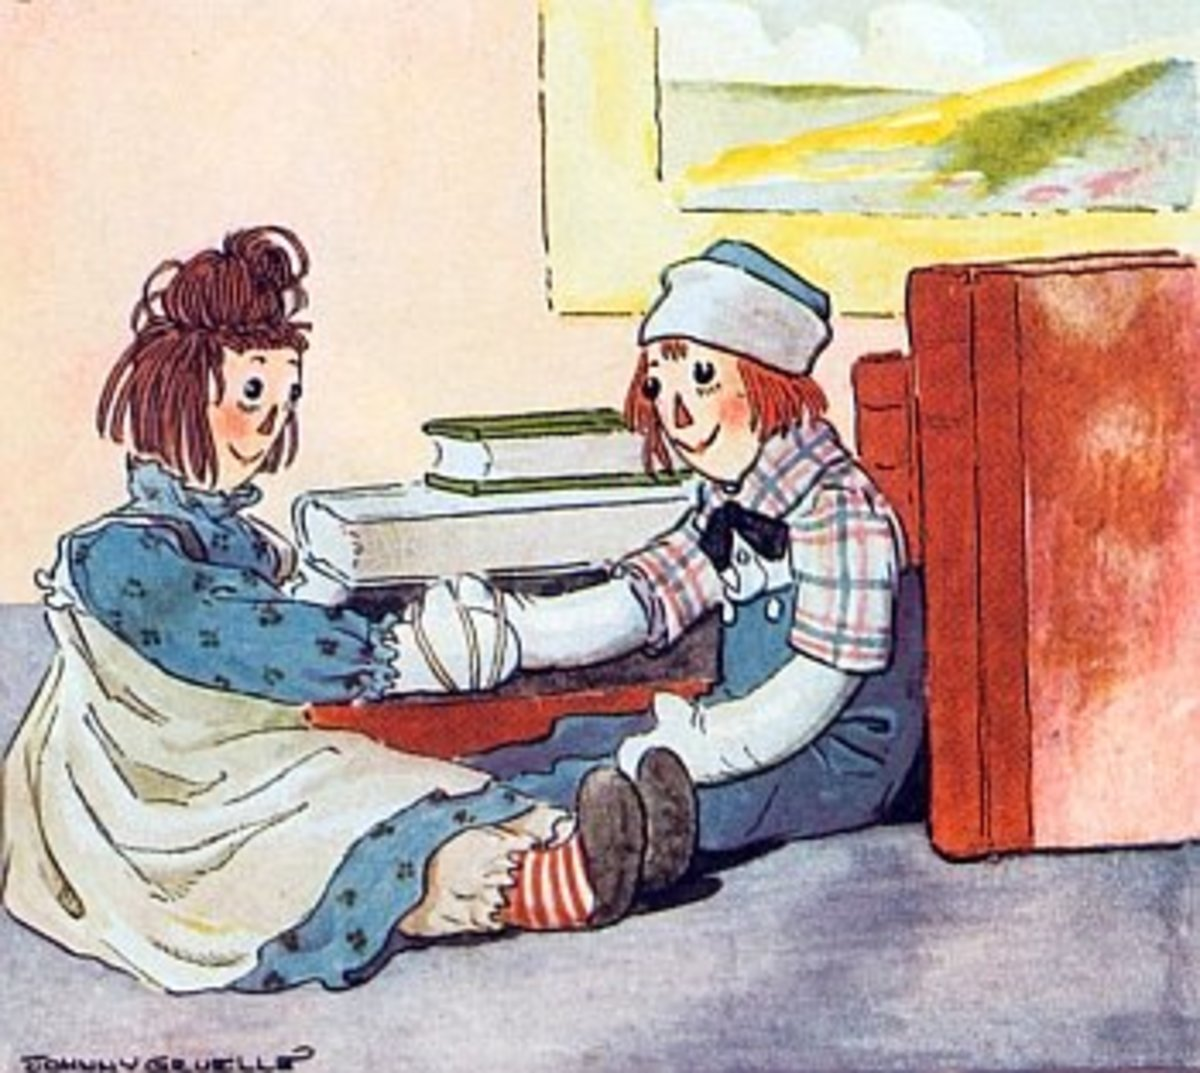 Raggedy Ann Wears a Pinafore From the Project Gutenberg Archives